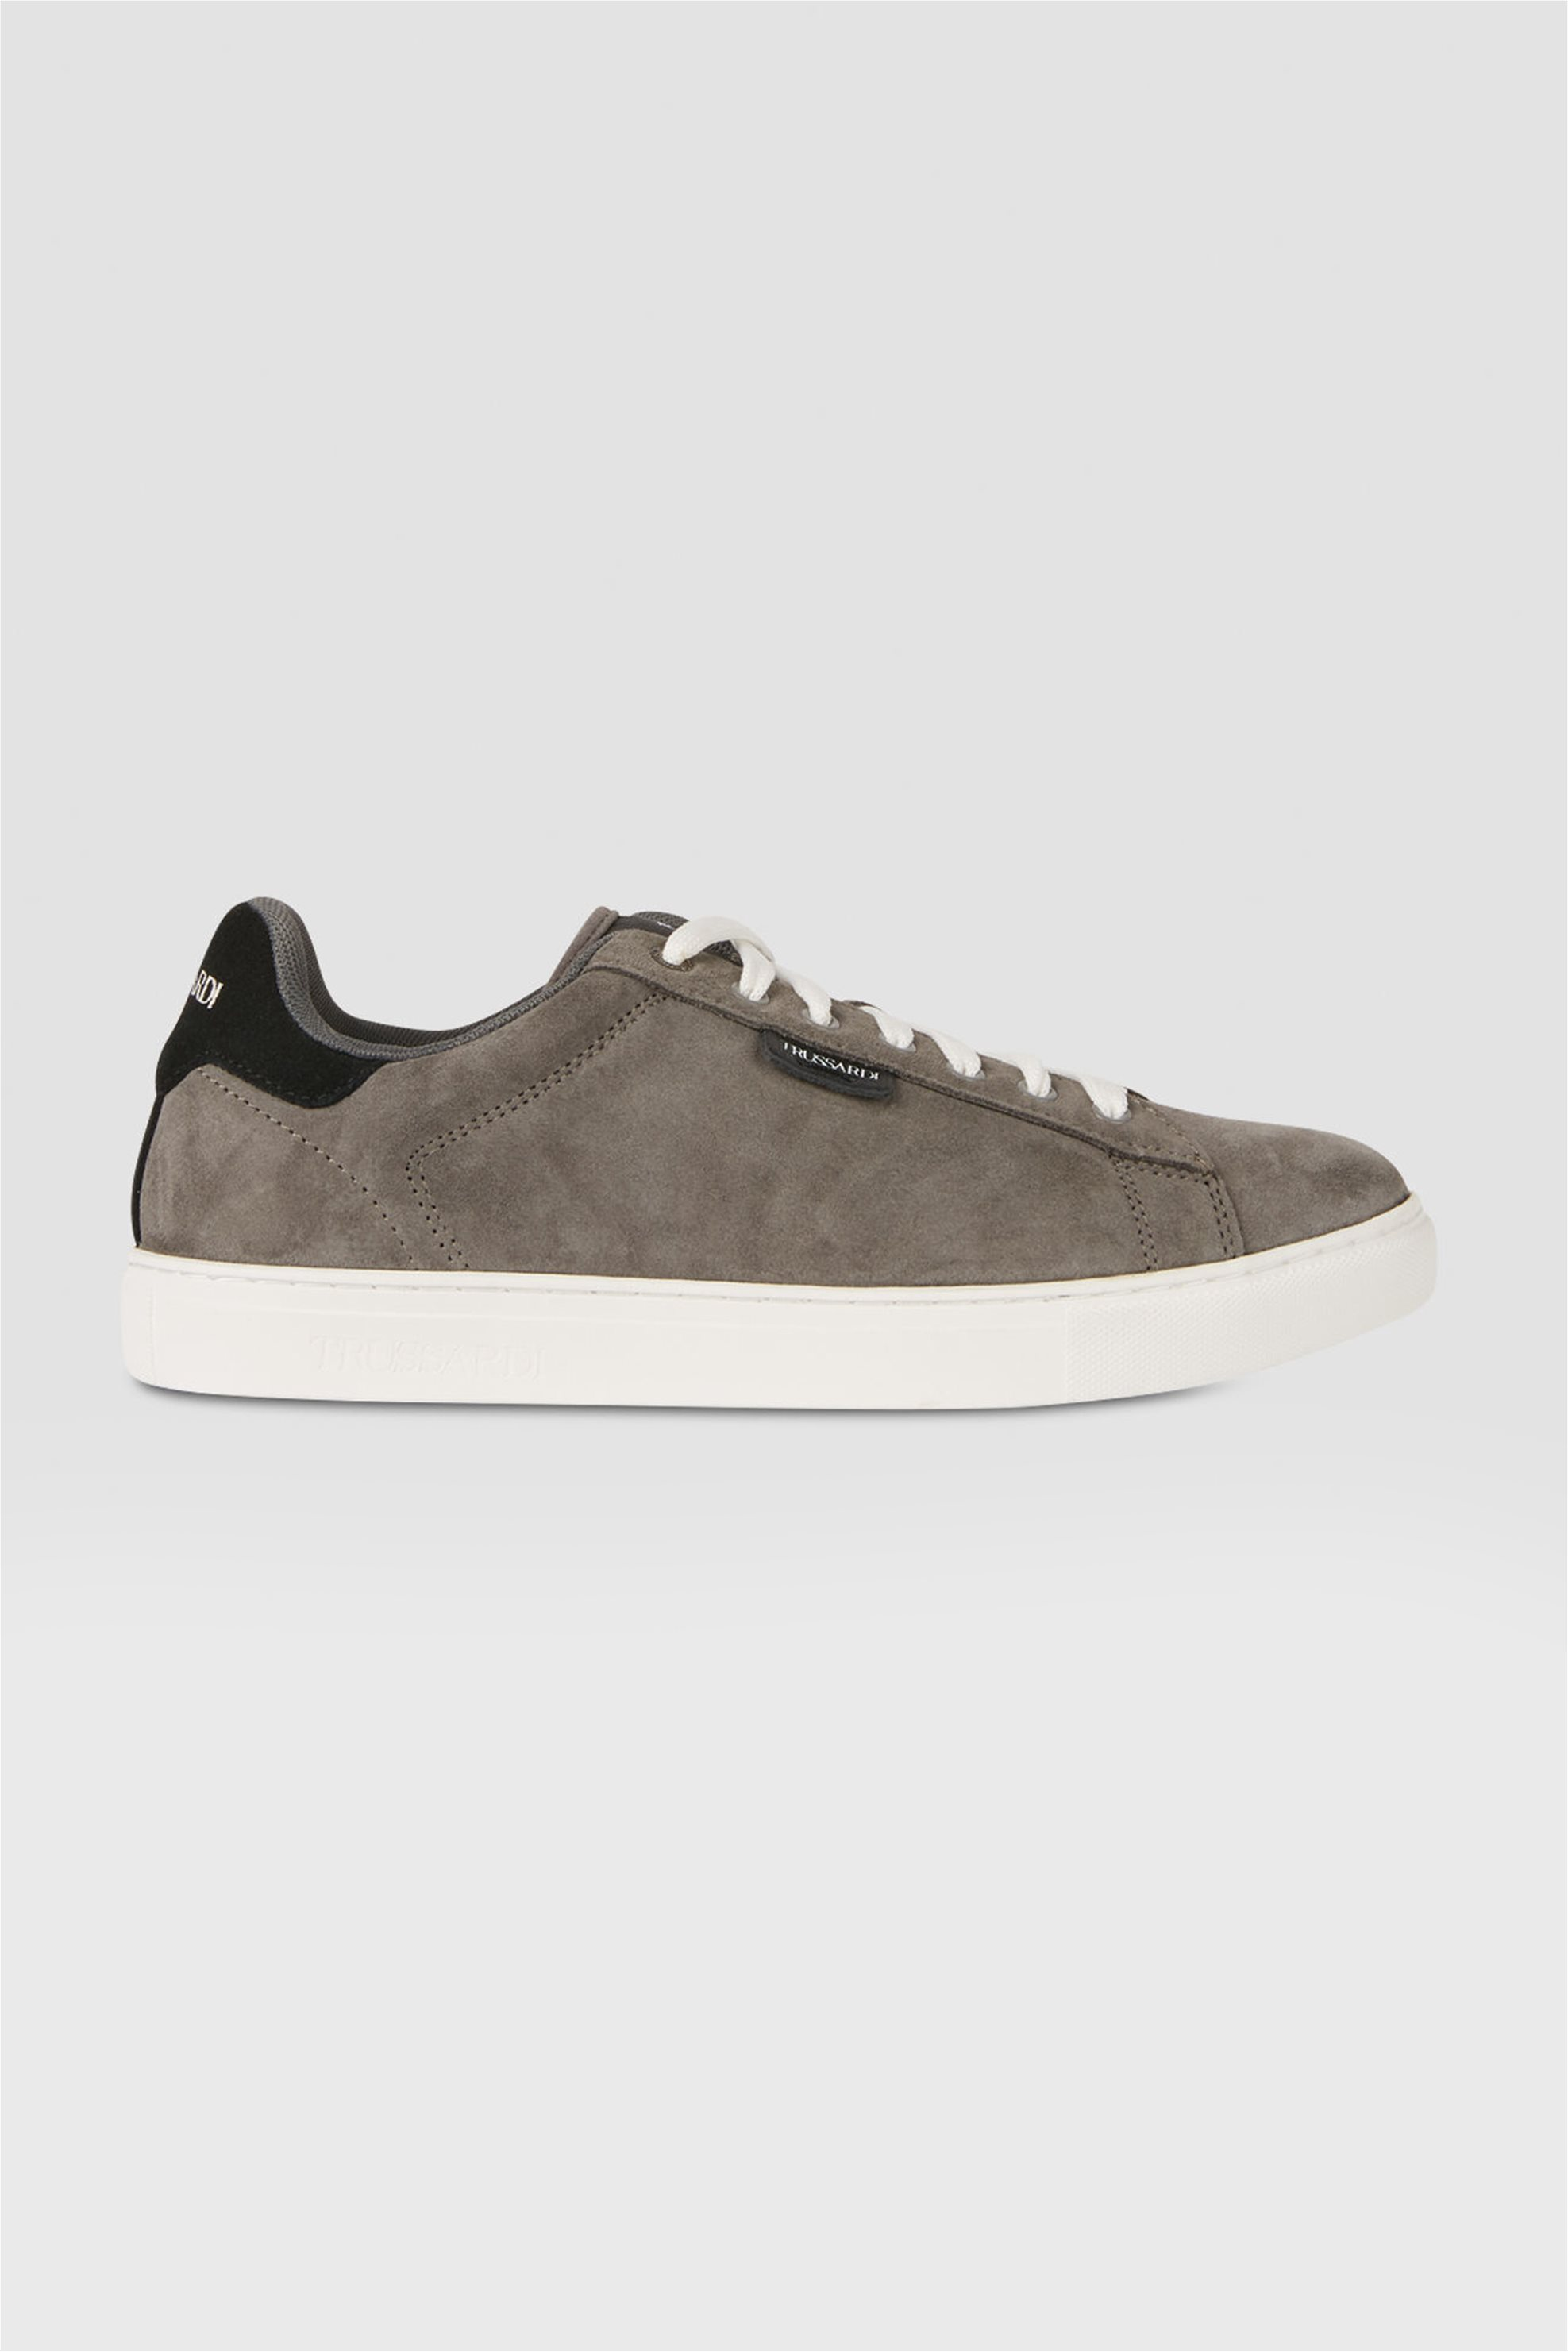 Trussardi ανδρικά suede sneakers με κορδόνια – 77A00270-9Y099997 – Γκρι